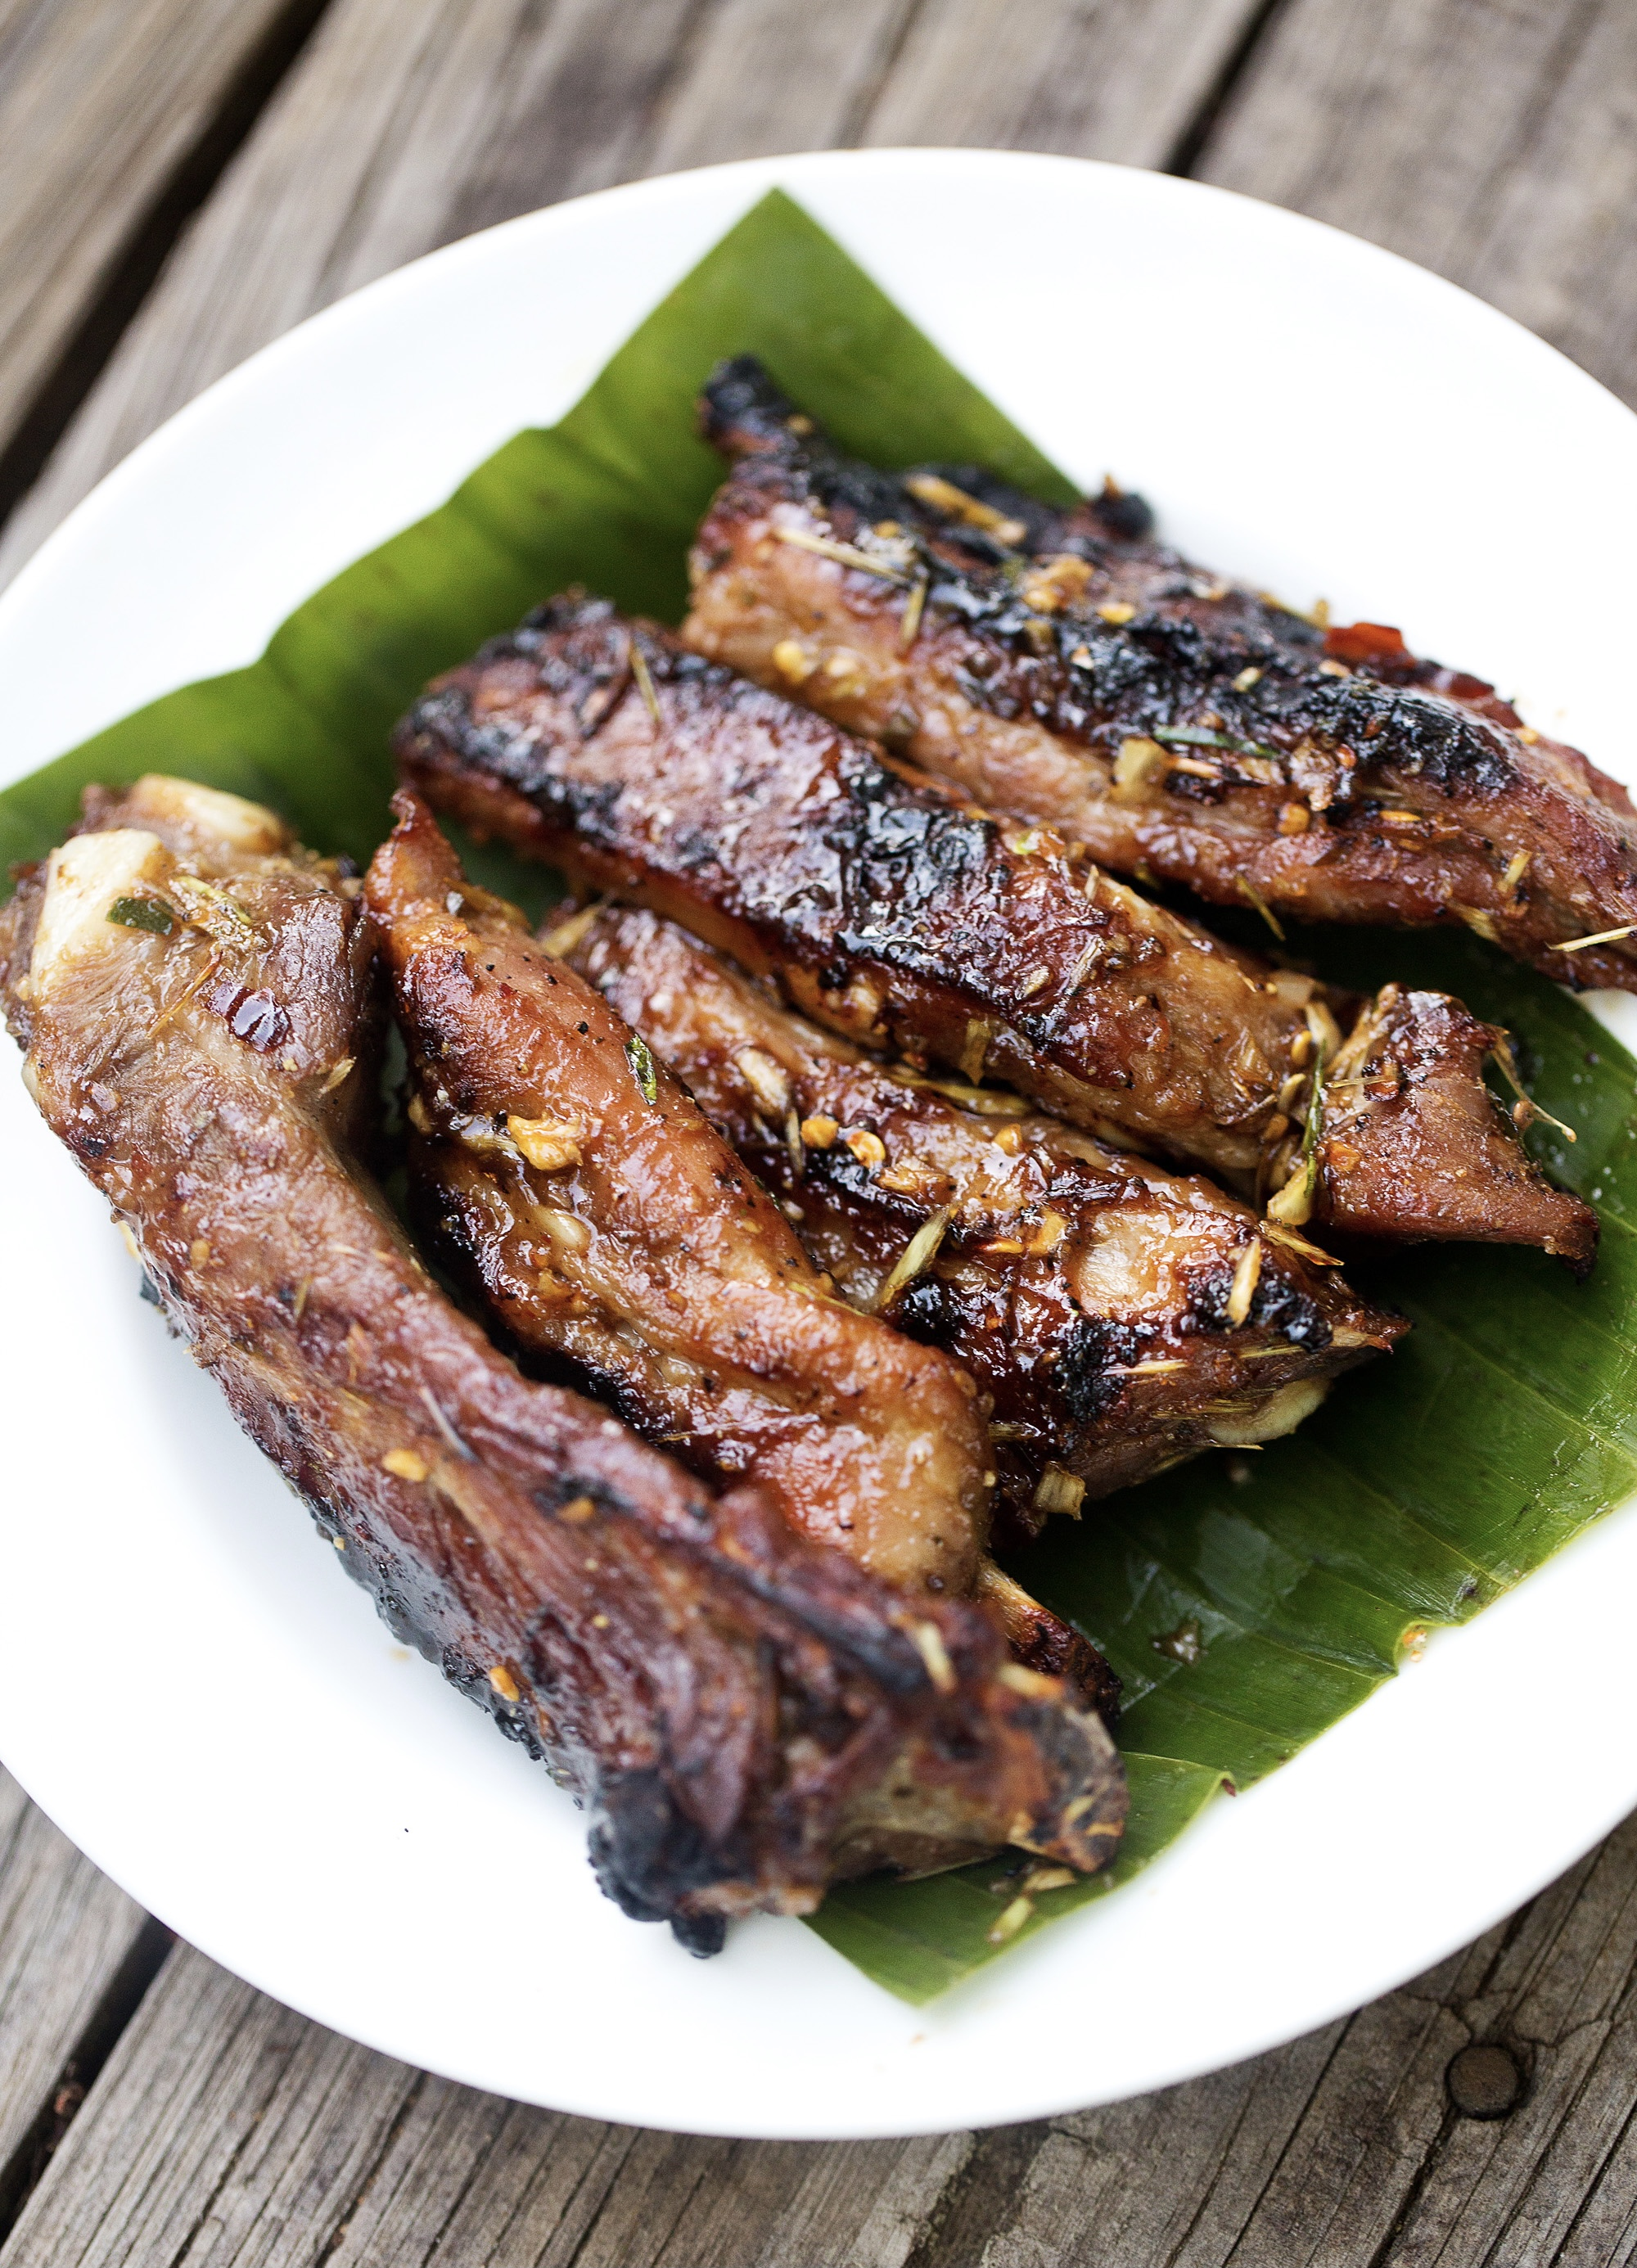 Five glistening barbecue lemongrass ribs sit atop a banana leaf on a white plat